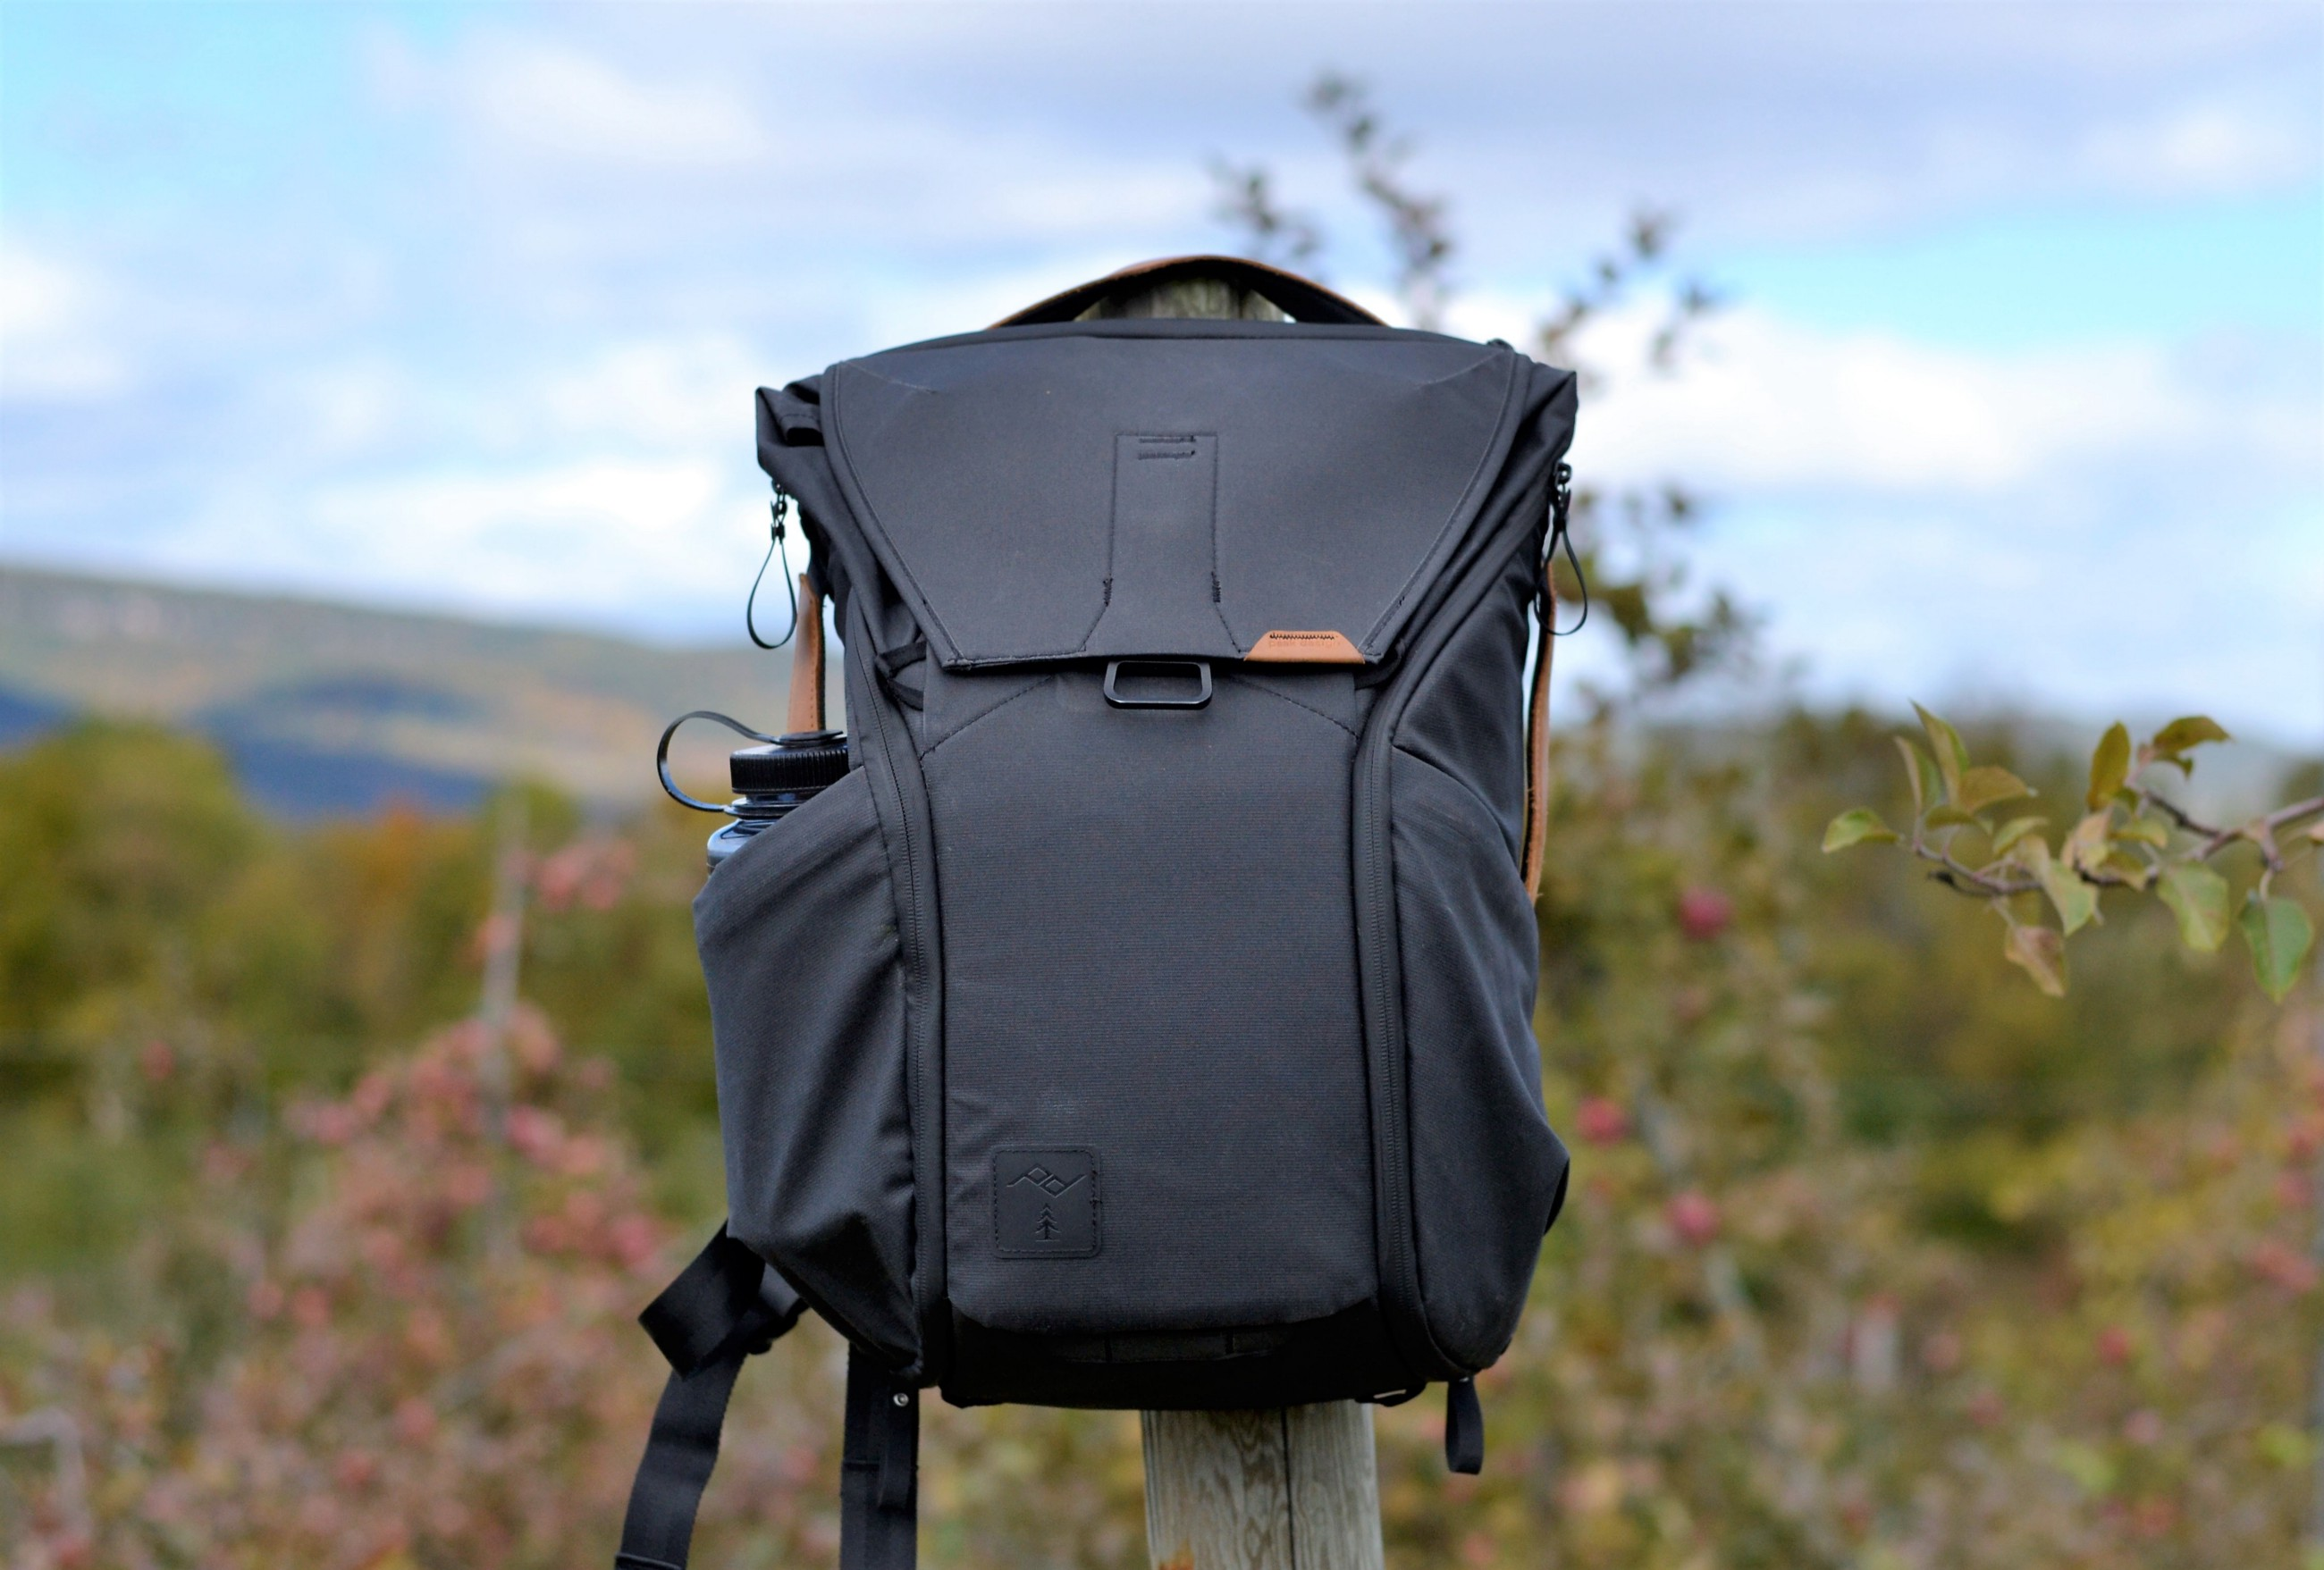 6935b9e769 The Peak Design Everyday Backpack. This is a legendary bag that already has  a ton of reviews and innumerable users. No matter ...